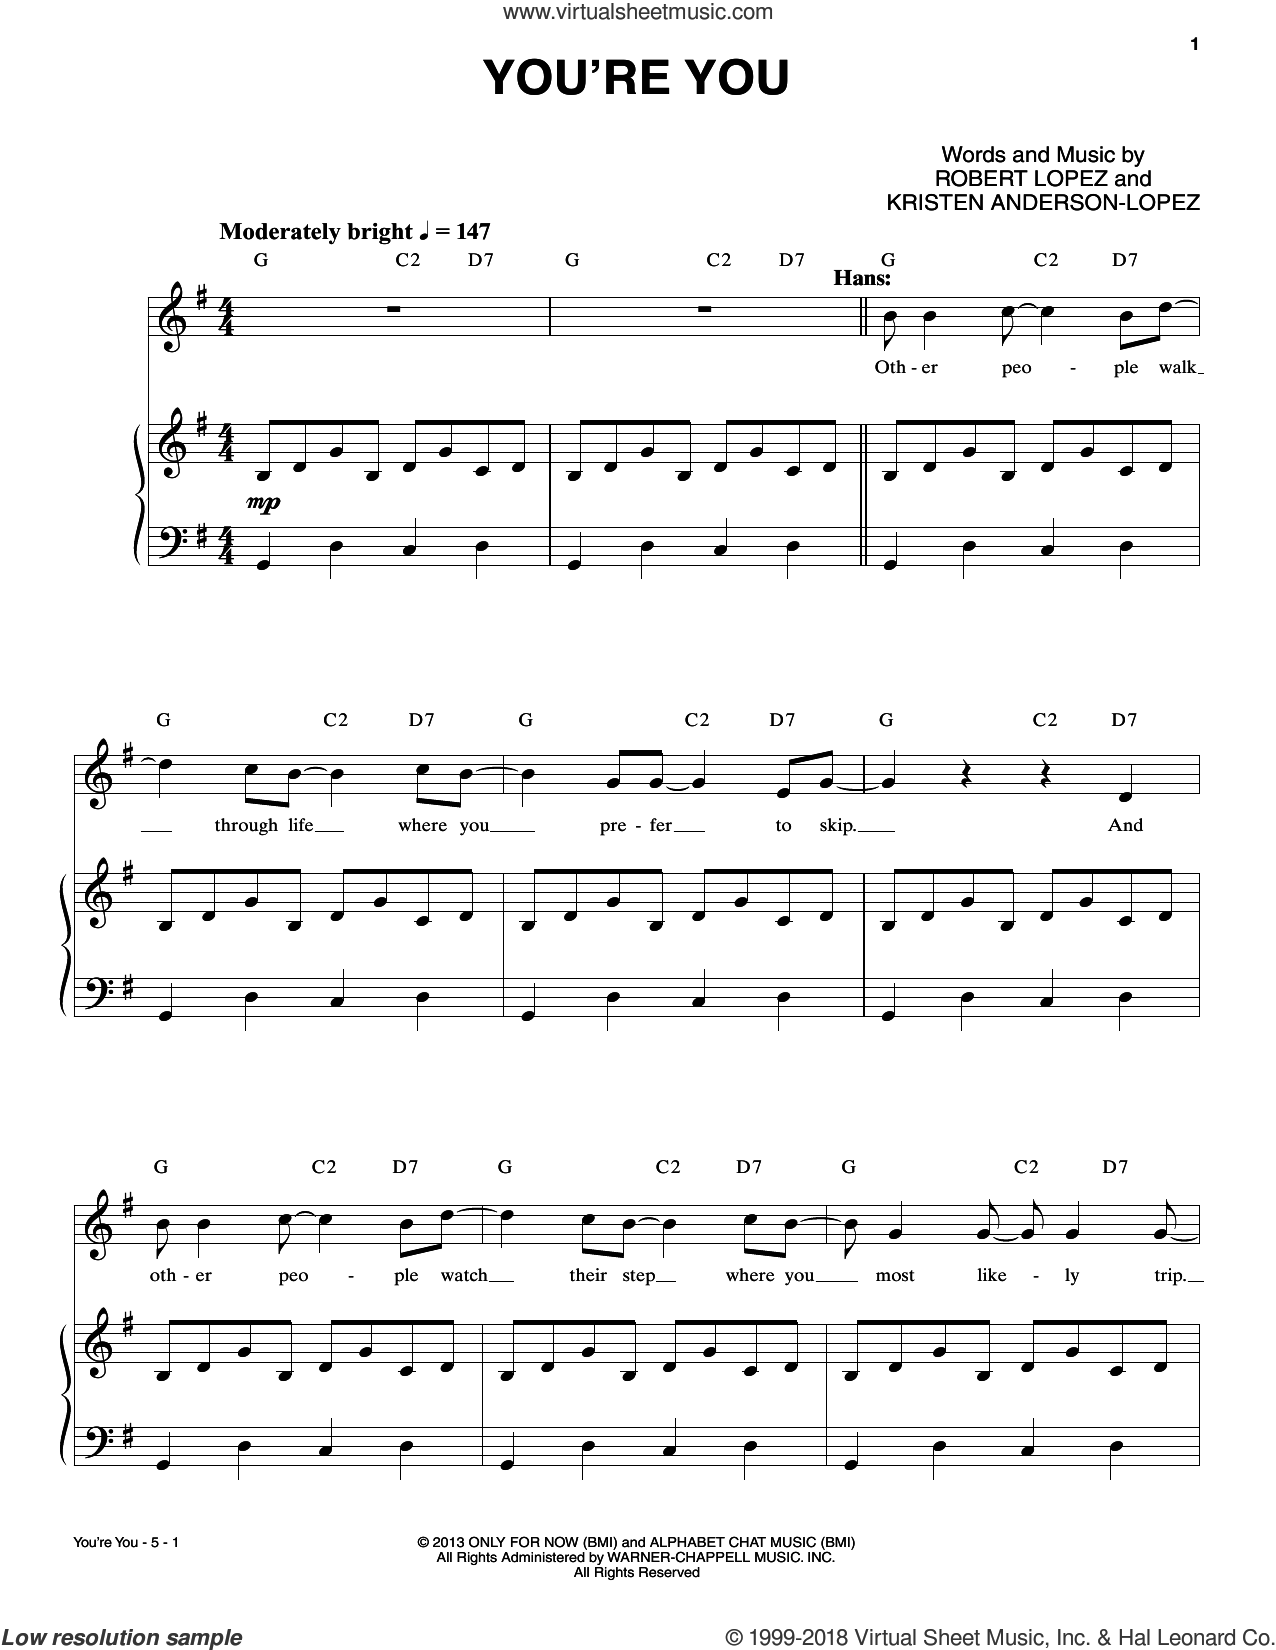 You're You sheet music for voice and piano by Robert & Kristen Anderson-Lopez, Kristen Anderson-Lopez and Robert Lopez, intermediate skill level